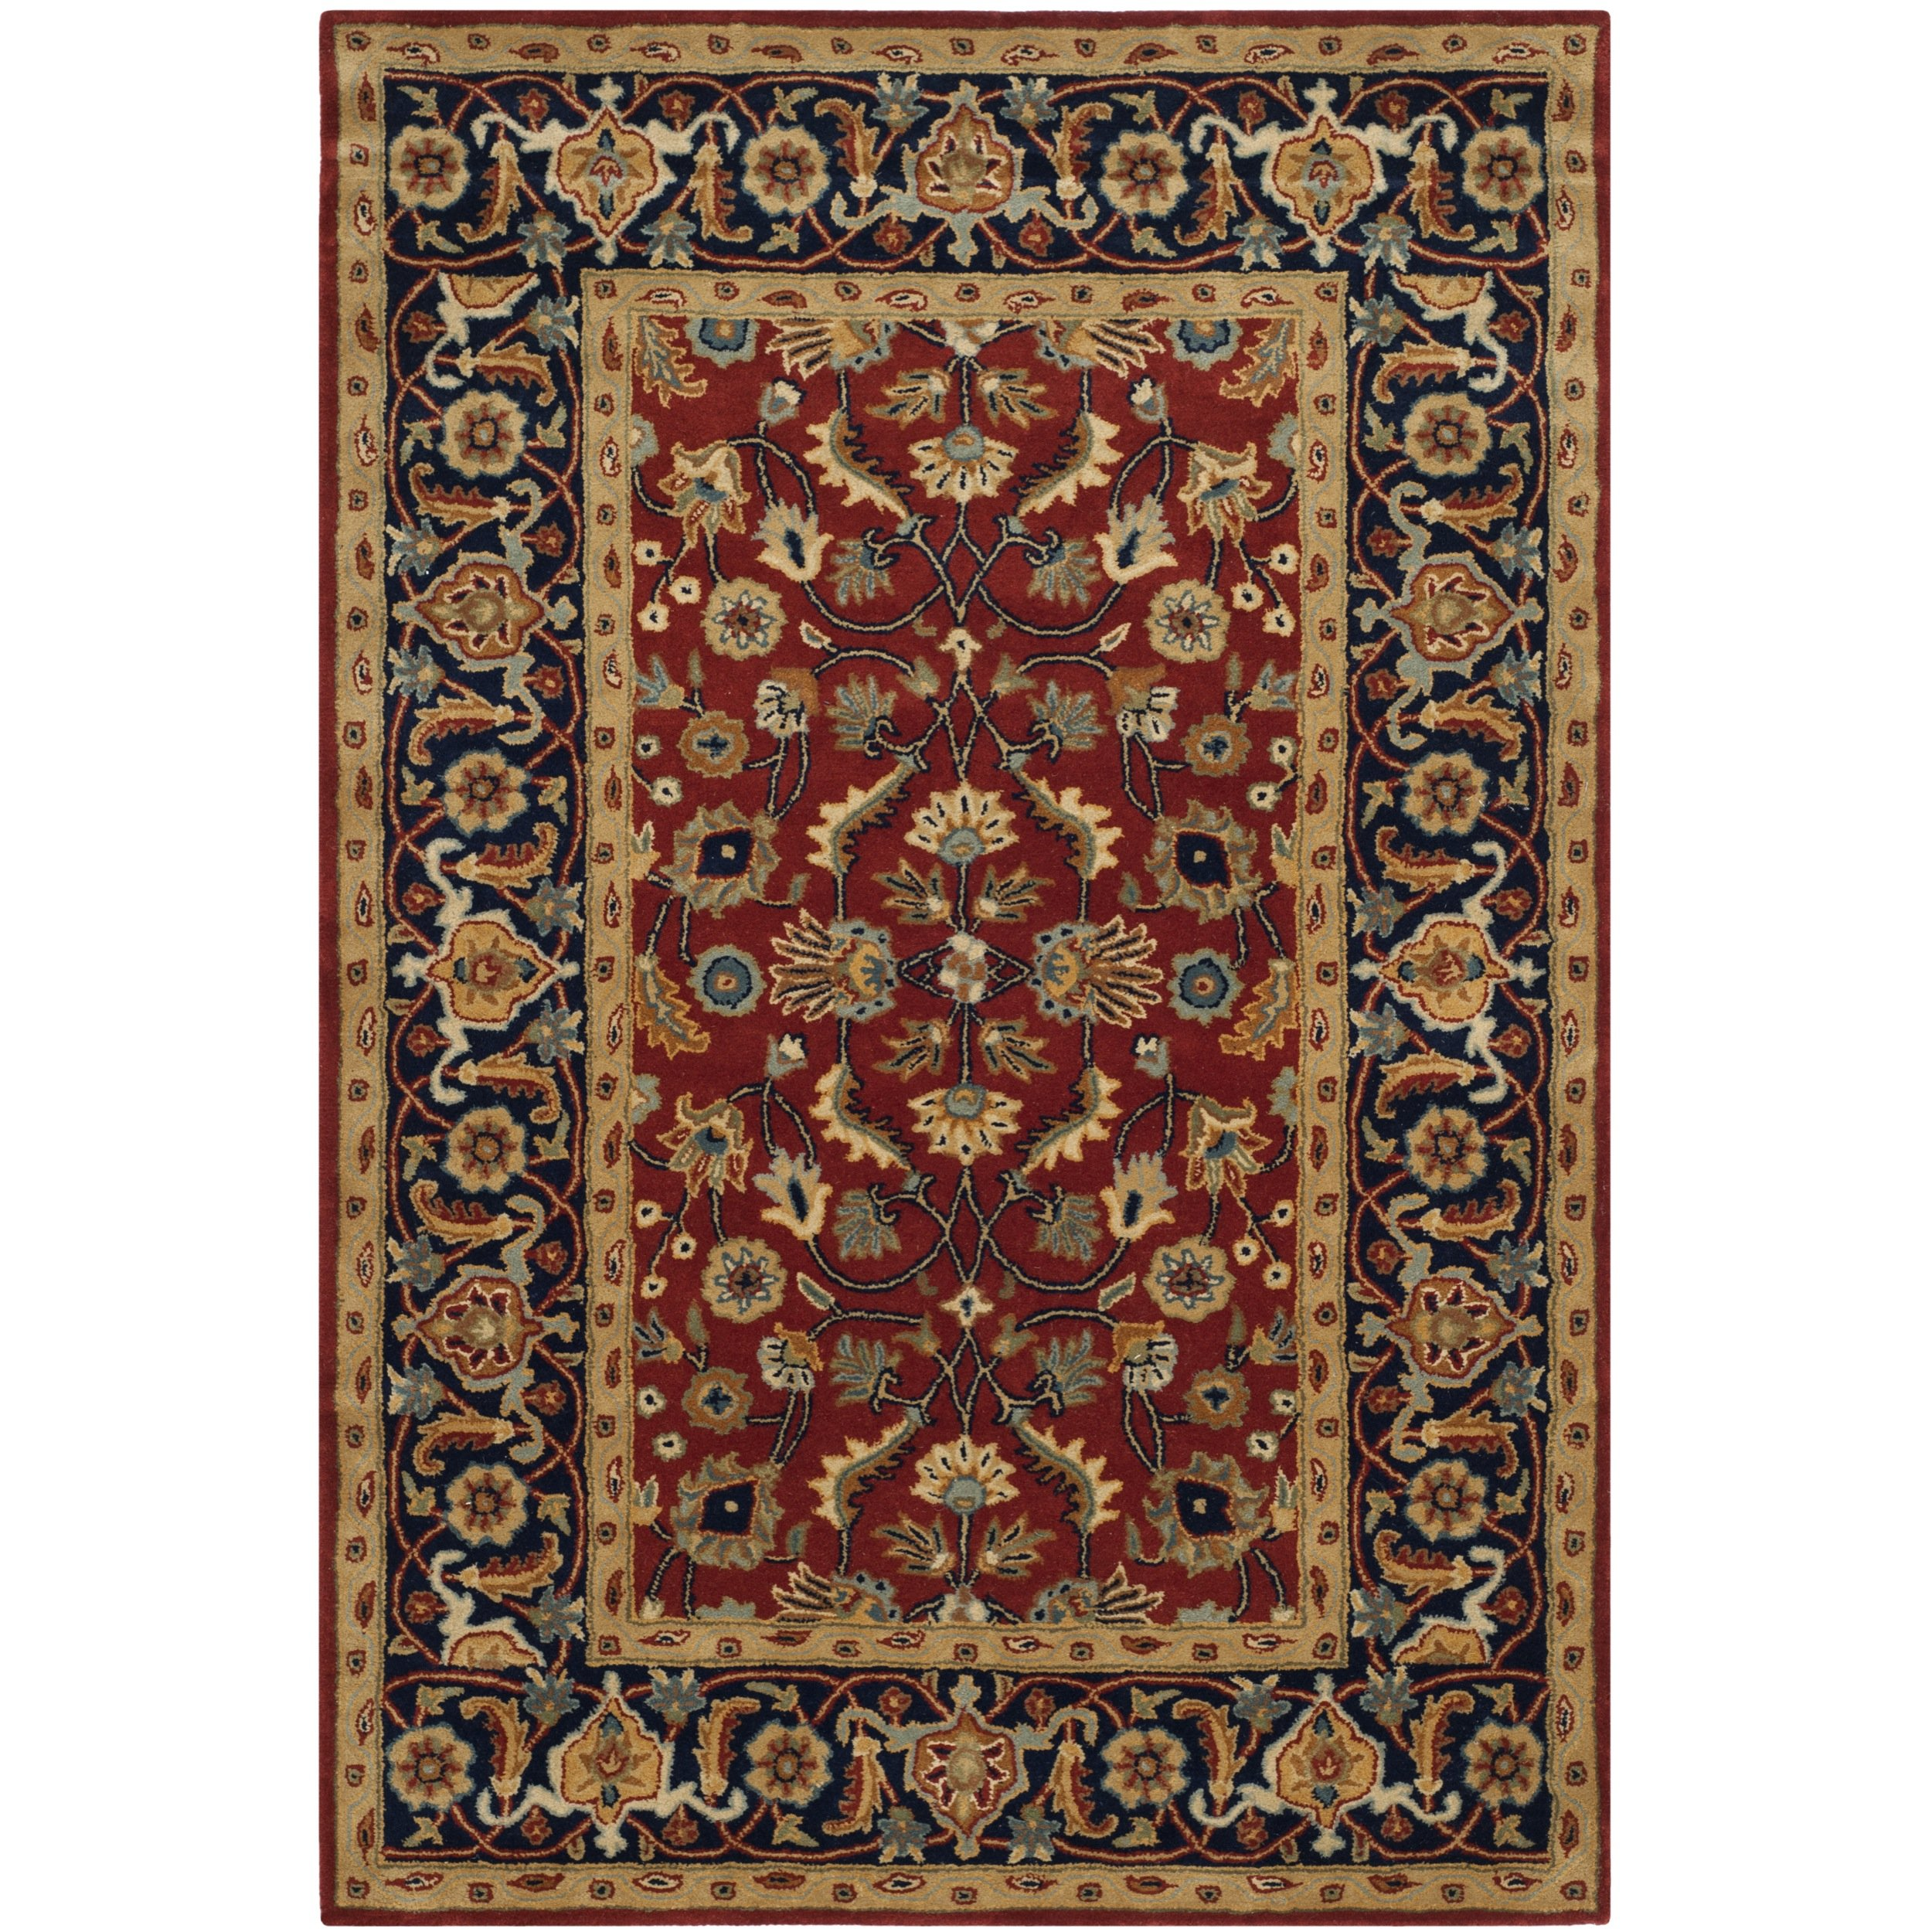 Safavieh Royalty Collection ROY256A Handmade Traditional Rust and Navy Wool Area Rug (6' x 9') by Safavieh